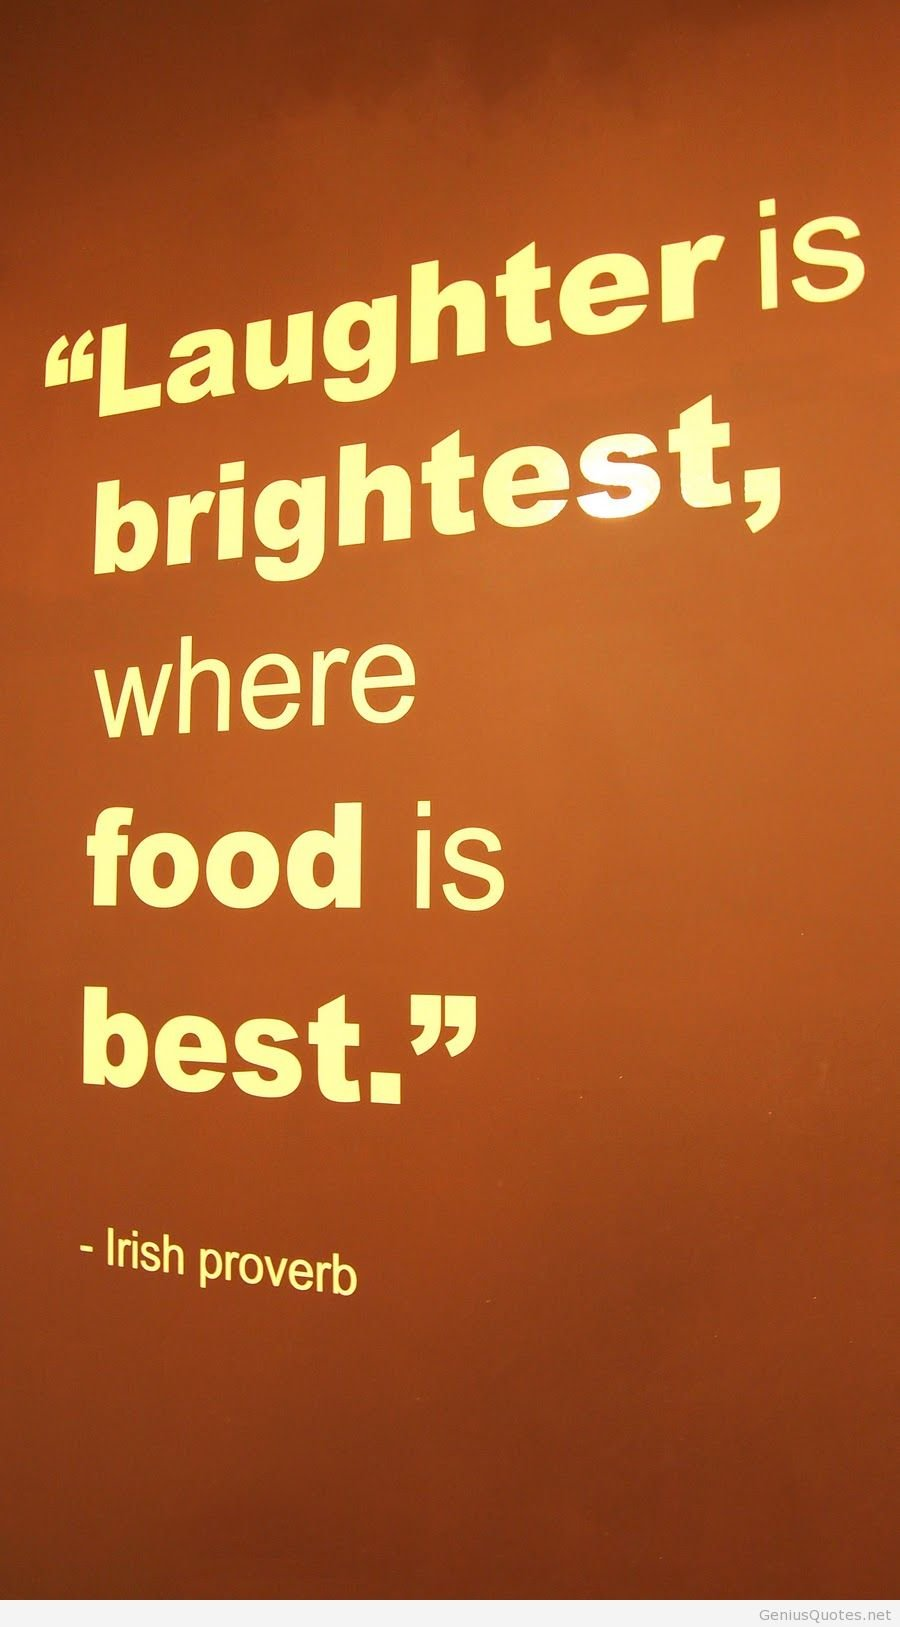 889769436-Where-food-is-best-family-fat-quotes.jpg